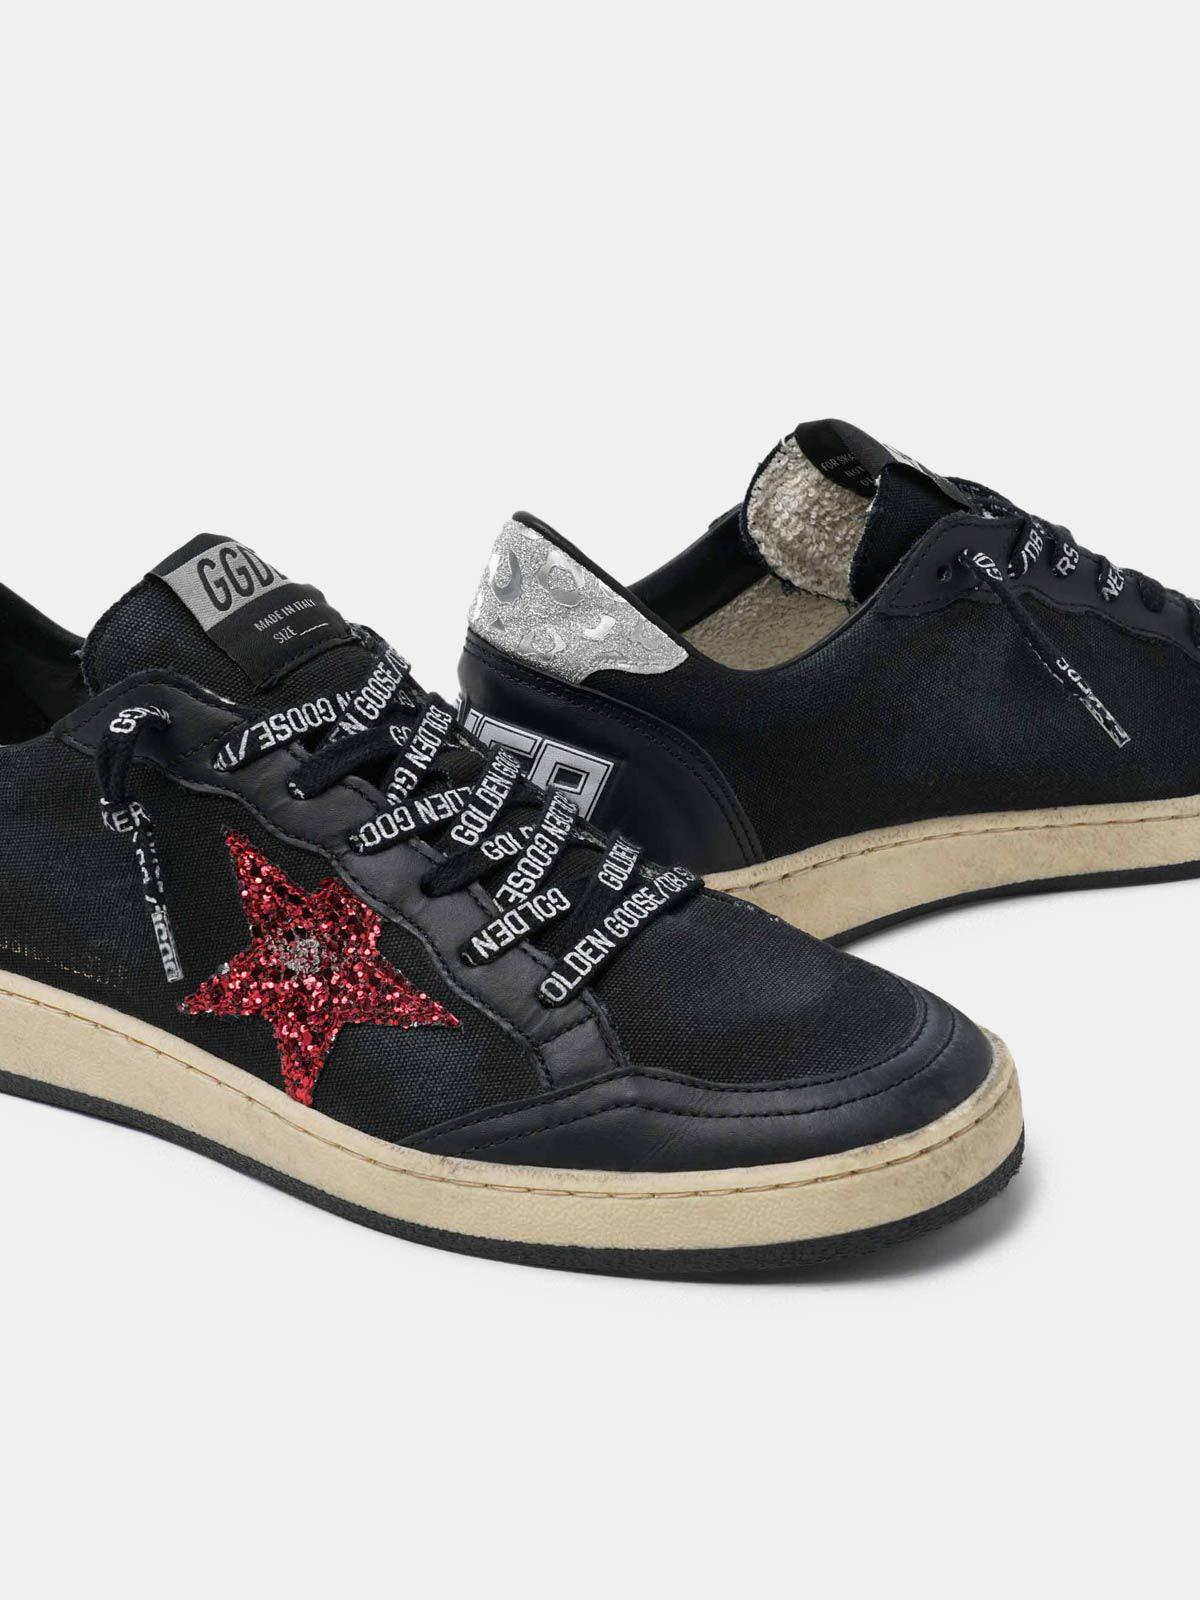 Black Ball Star sneakers with glittery purple star 3